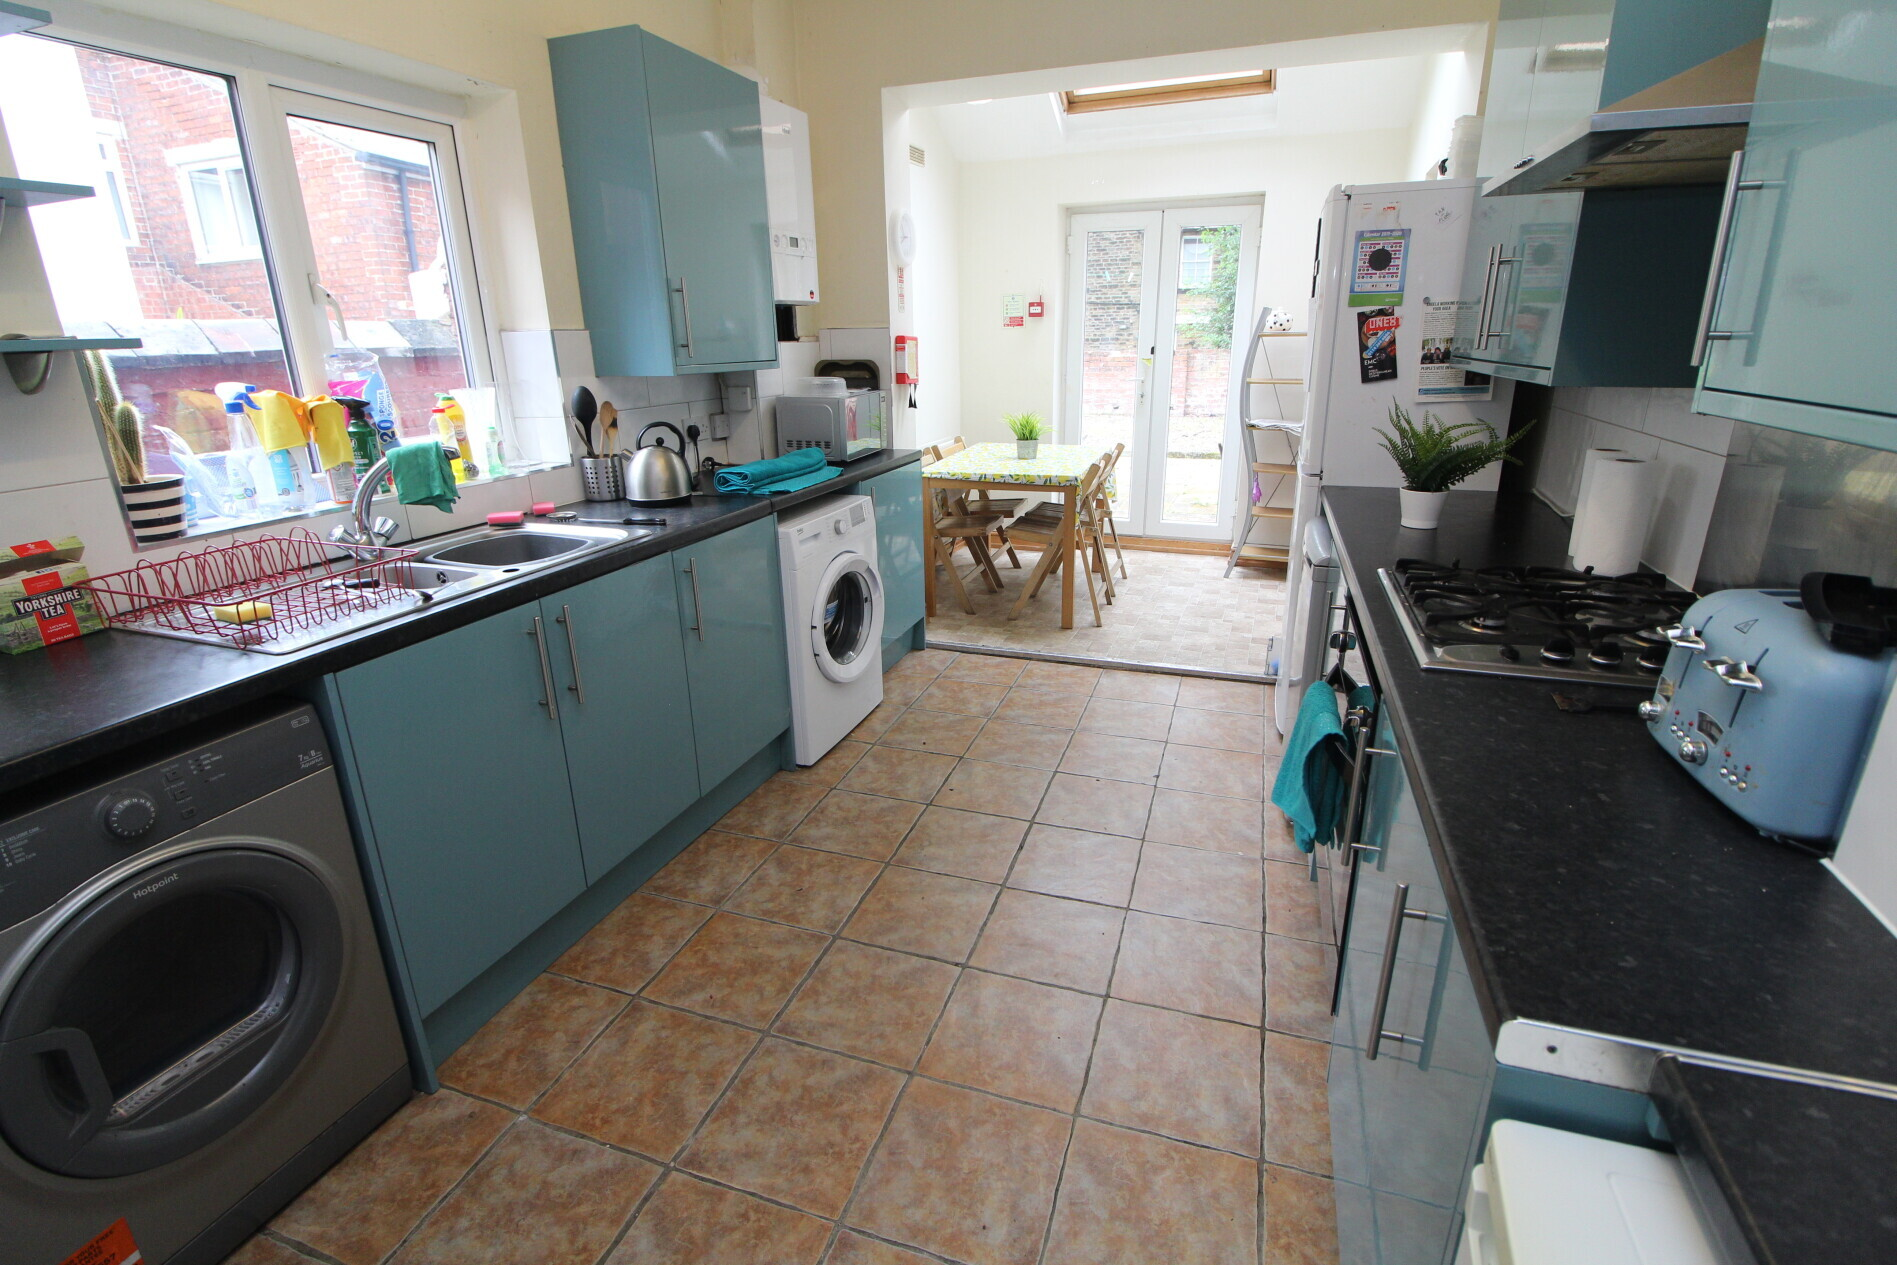 6 bedroom student house in Broomhall, Sheffield